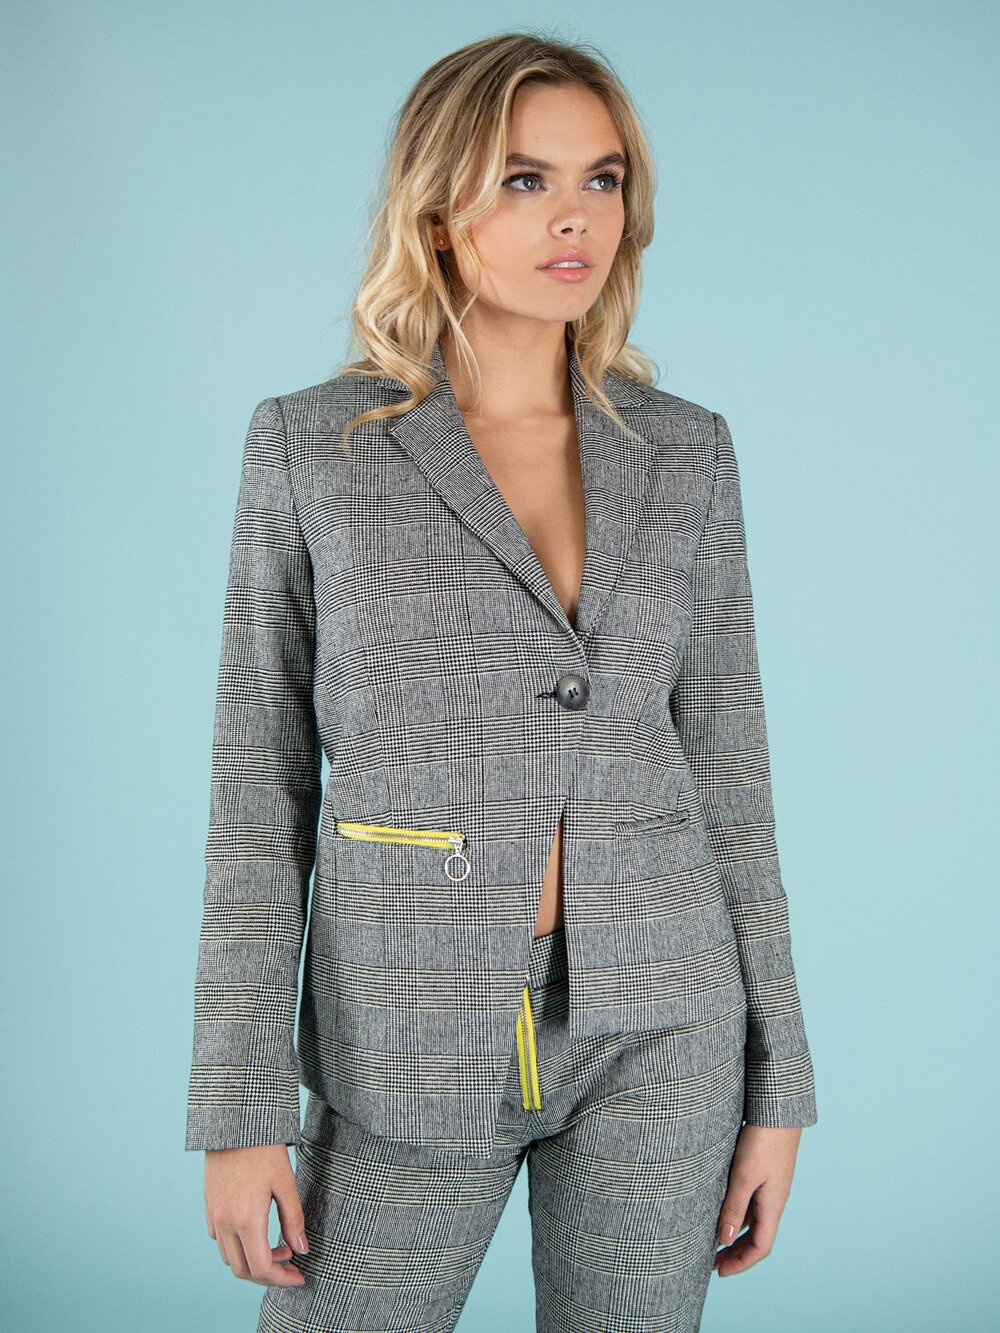 Woman wearing a sustainable blazer with bright yellow zipper